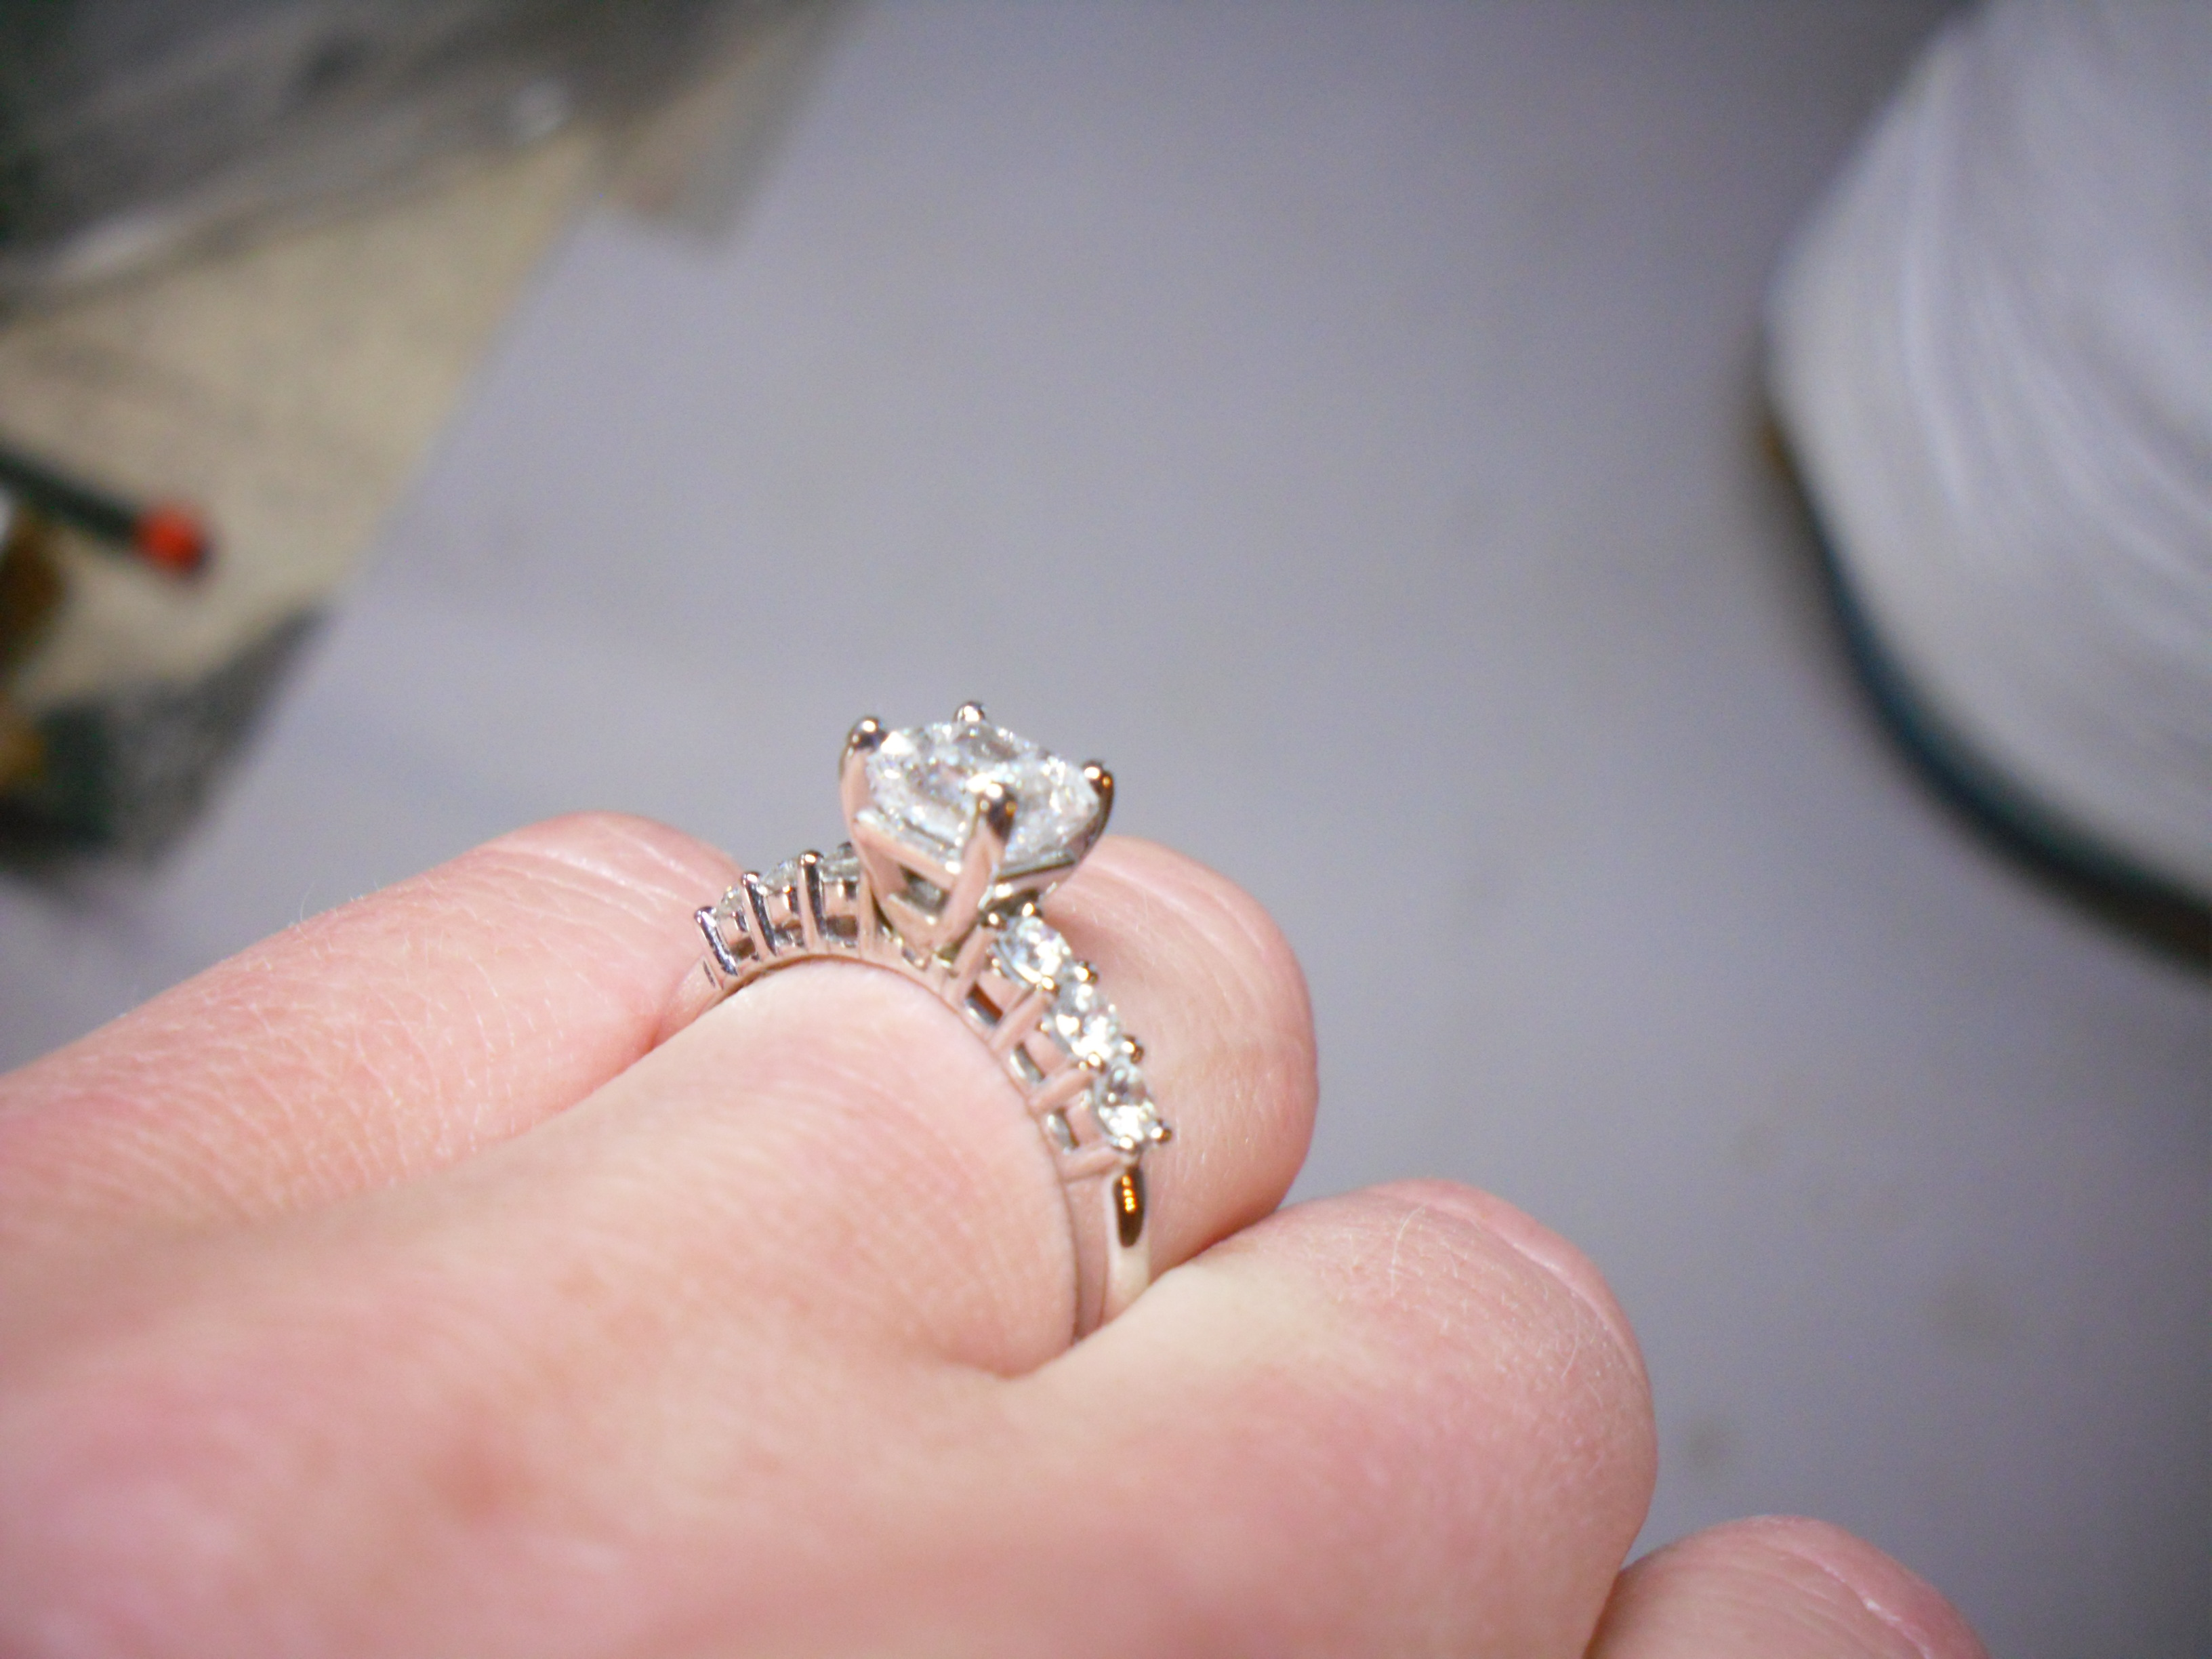 Awesome Big Diamond Ring In Box - Best Jewelry